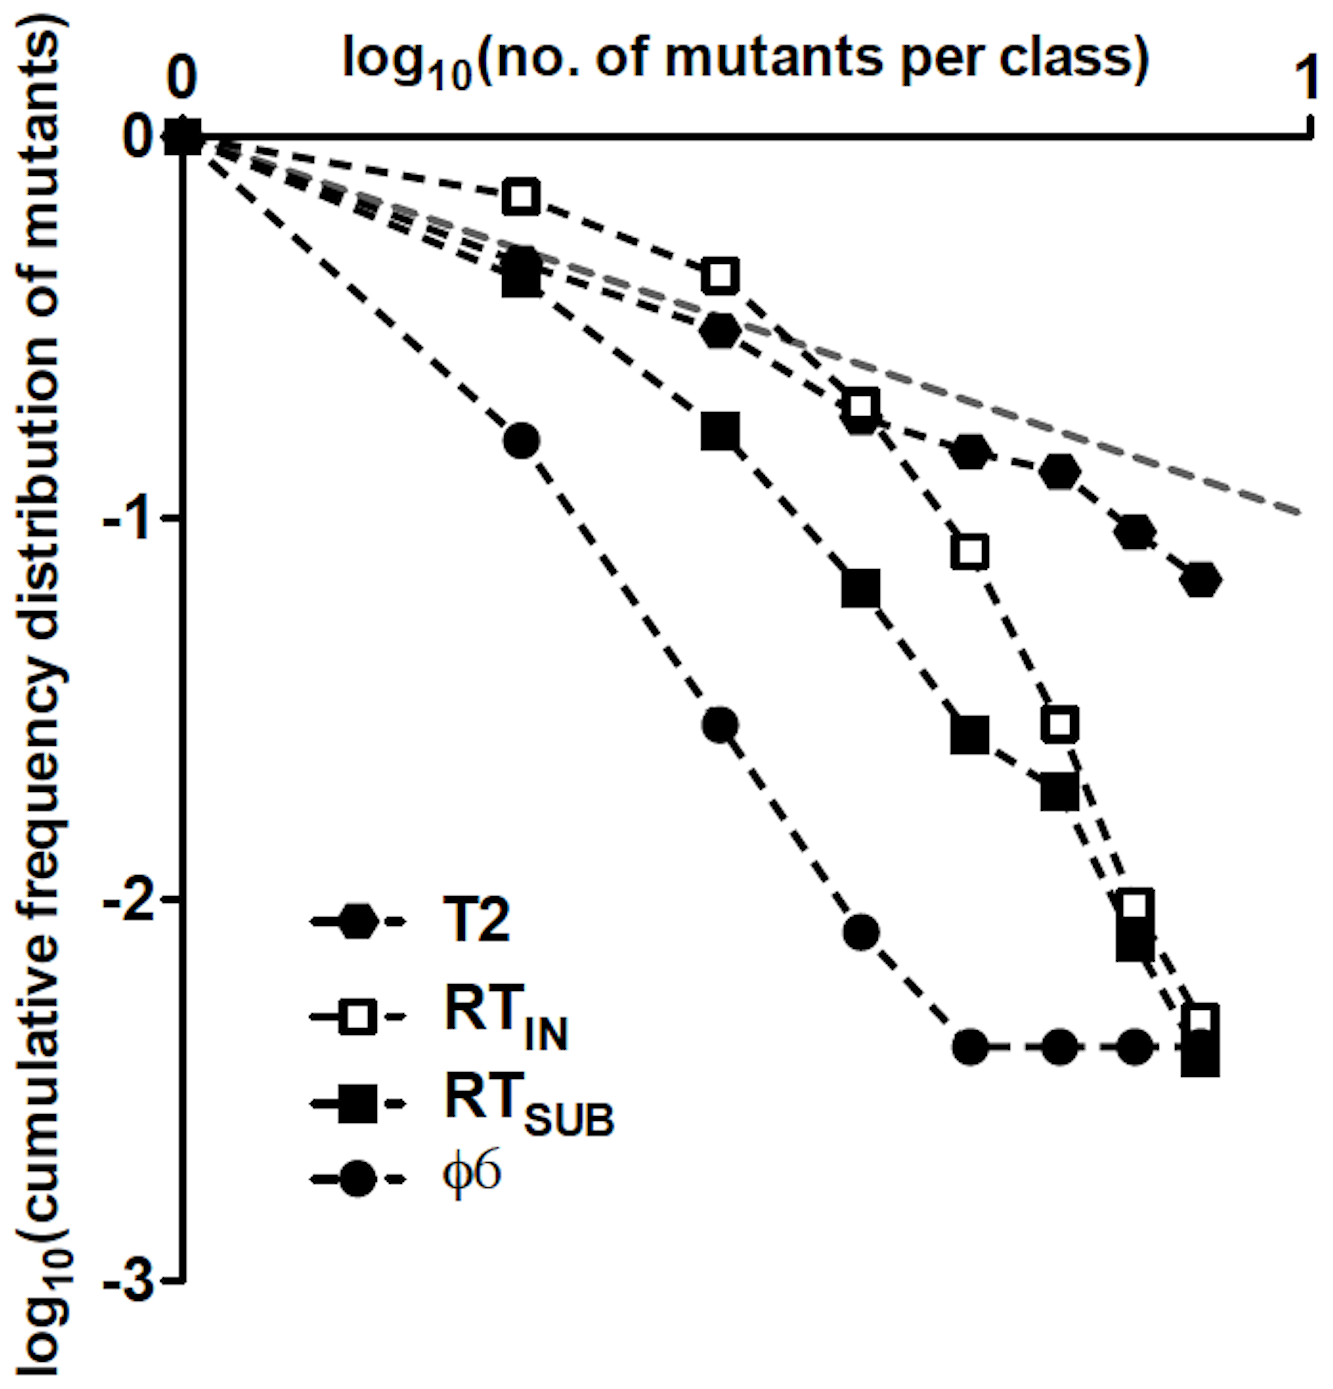 Double-logarithmic plots of the relative cumulative frequency distributions of mutants for T2, φ6, RT<sub>IN</sub>, and RT<sub>SUB</sub>.